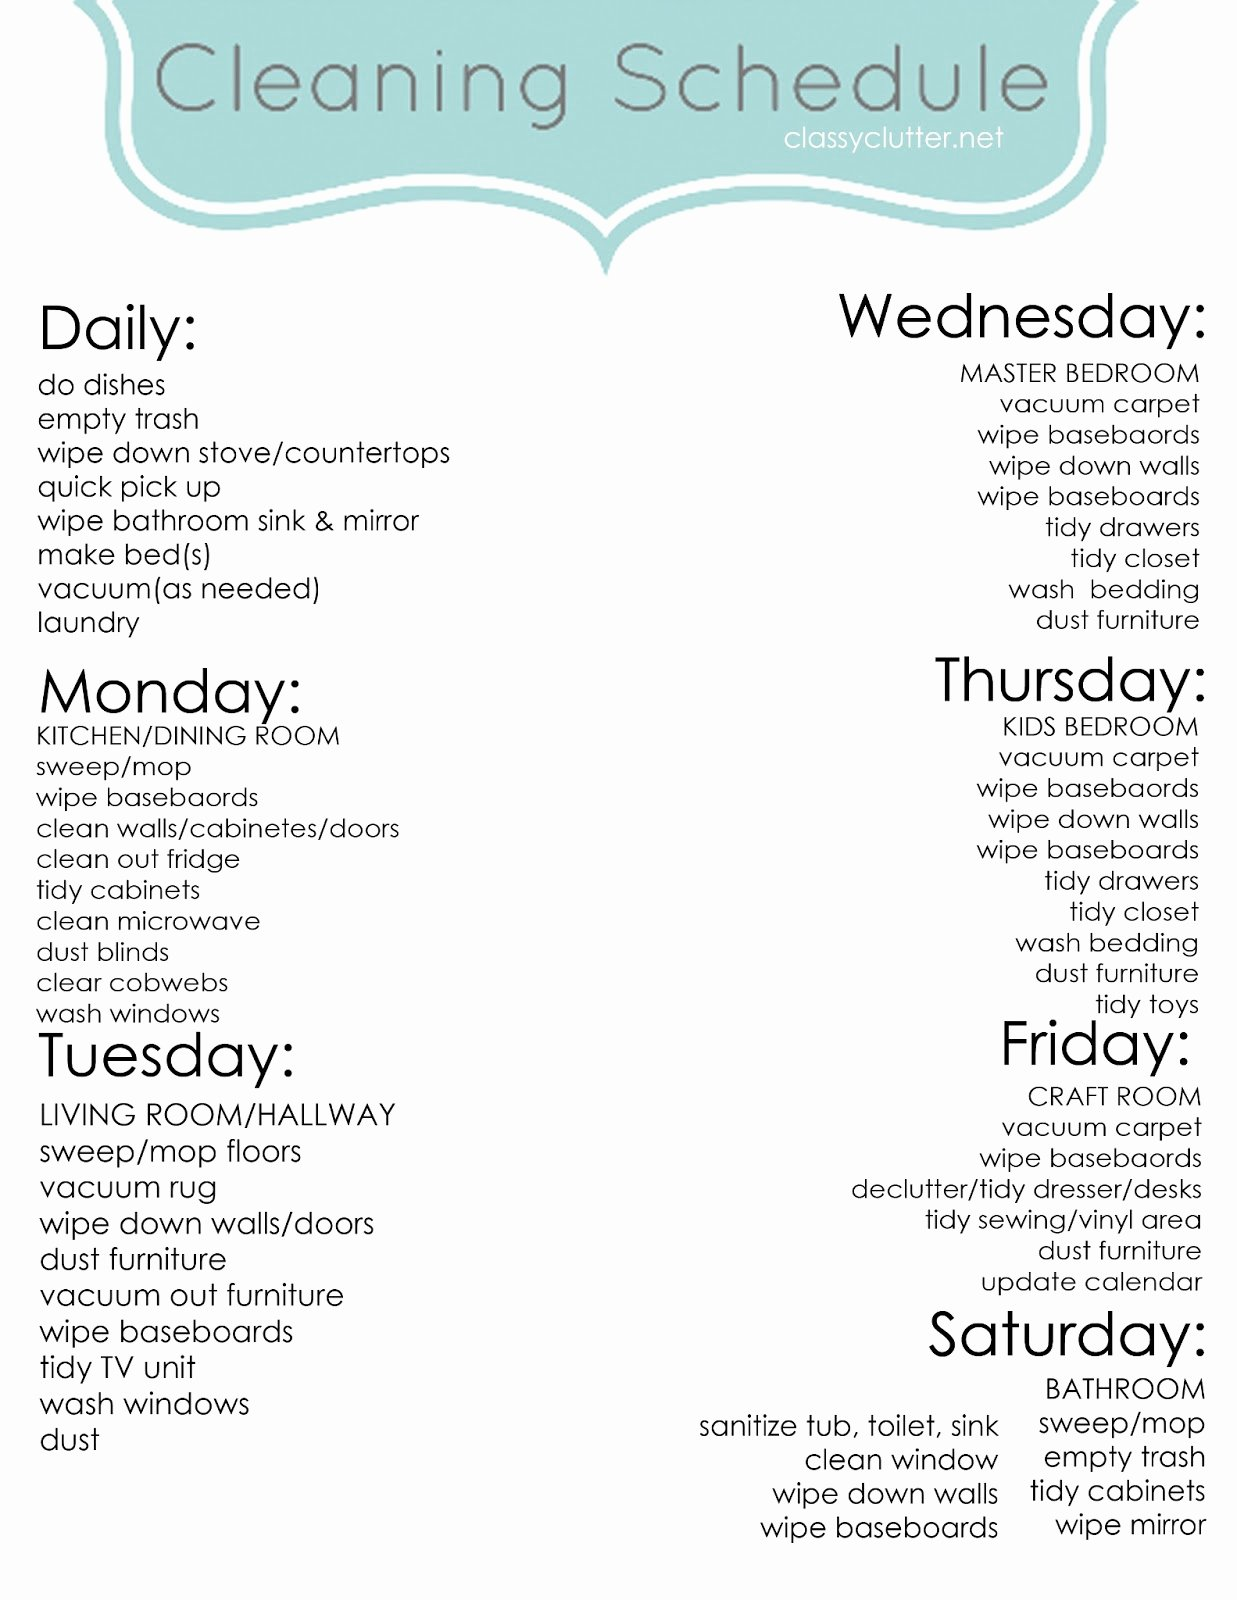 Monthly Cleaning Schedule Template New Weekly Cleaning Schedule Improve Your Cleaning Habits